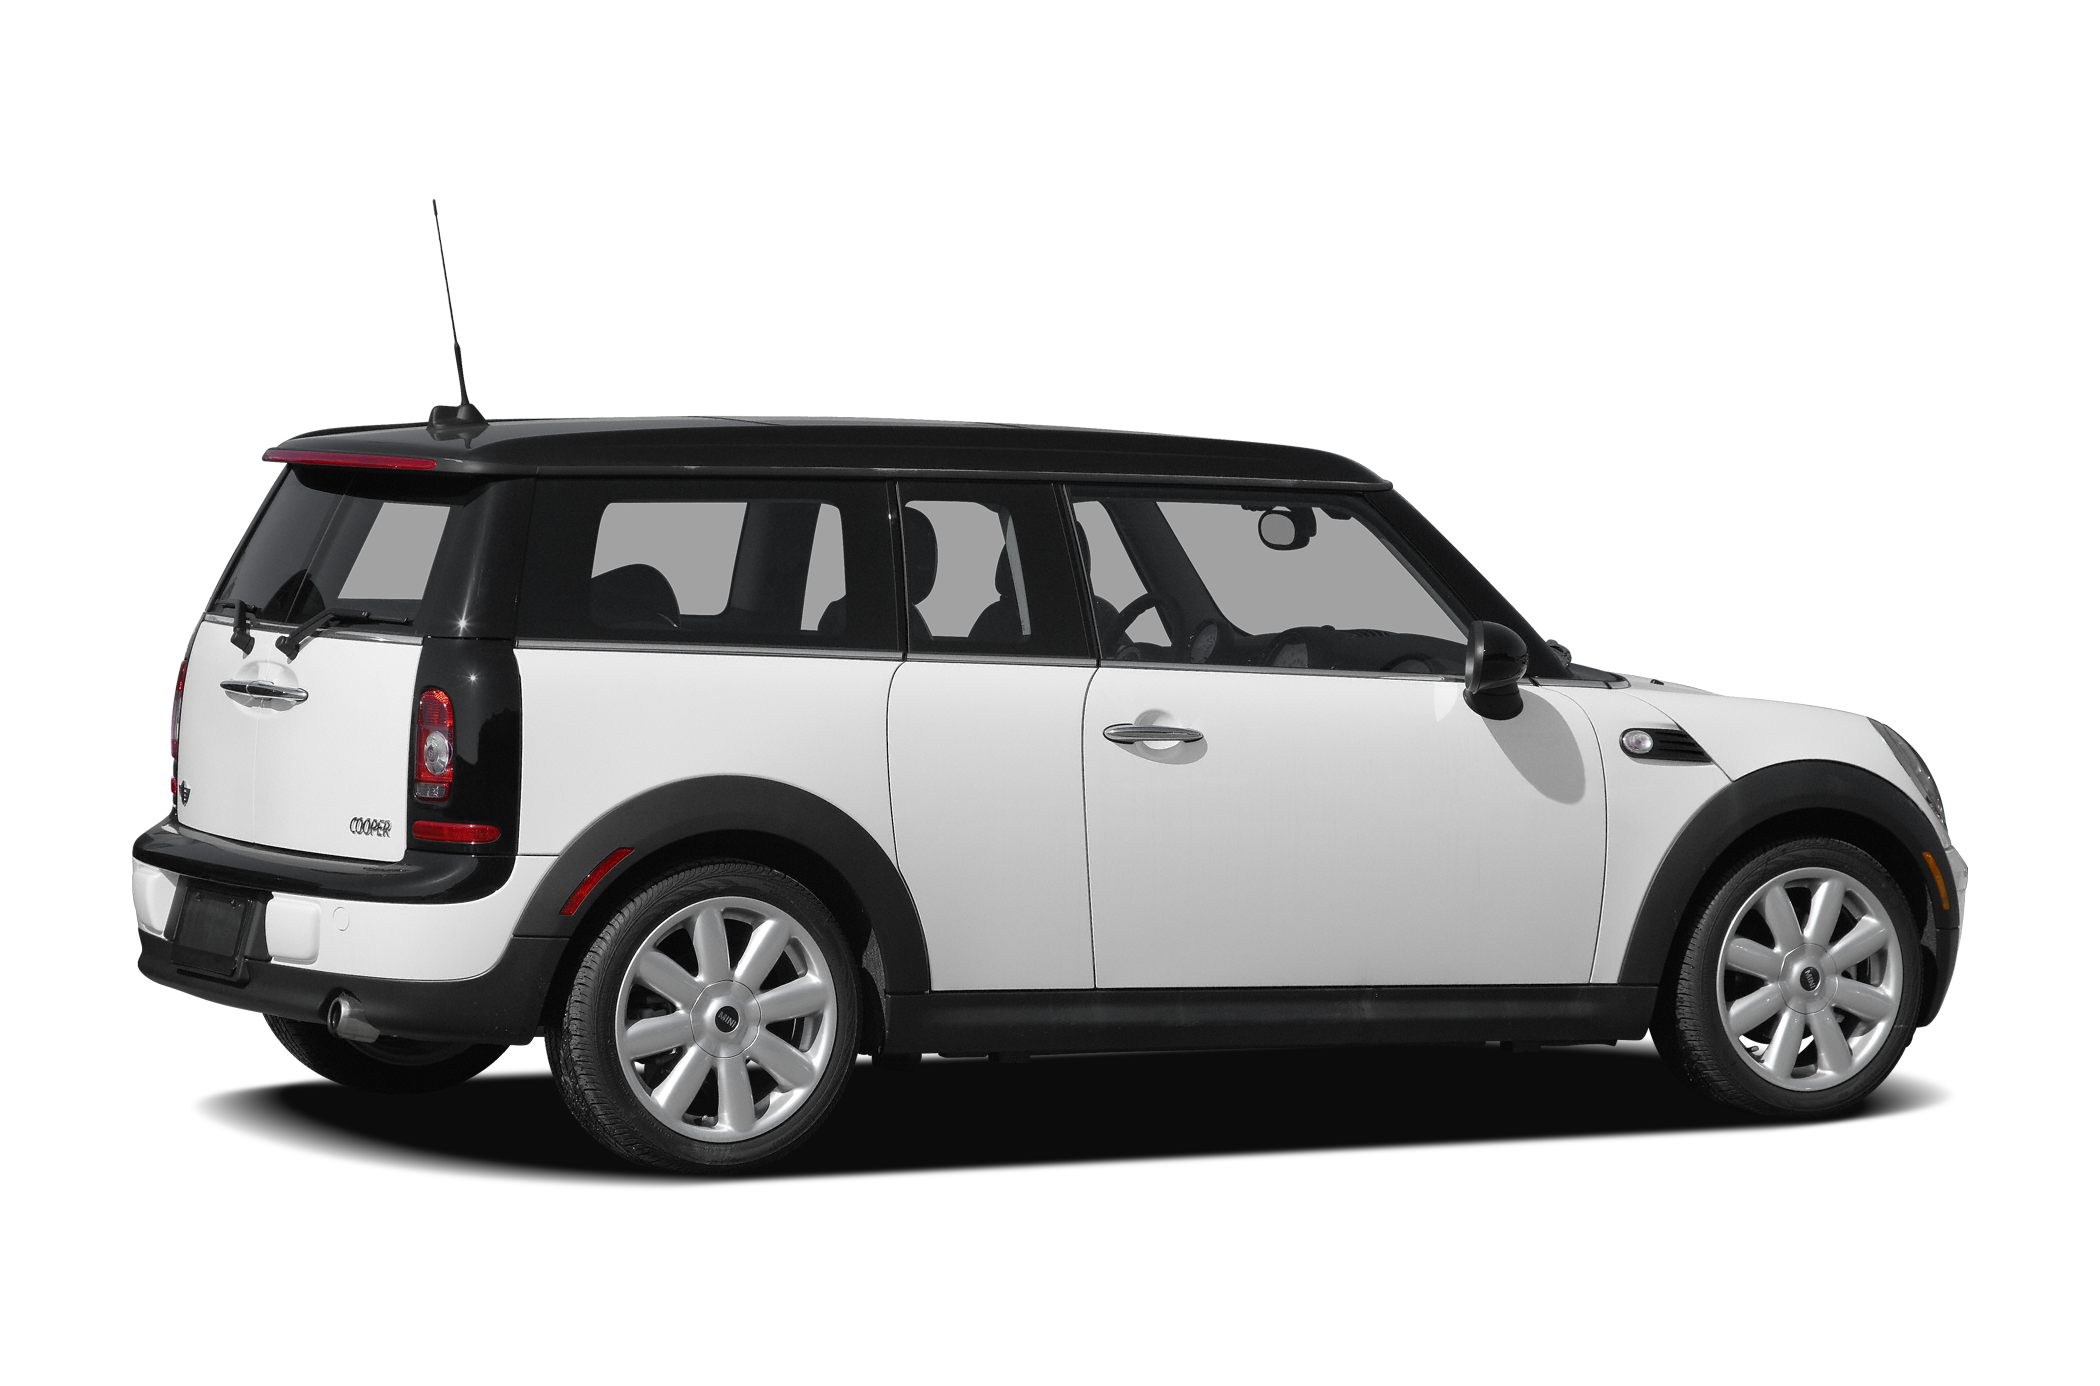 2009 MINI Cooper Clubman Vehicle Options ABS Brakes Interval Wipers Side Head Curtain Airbag Air c